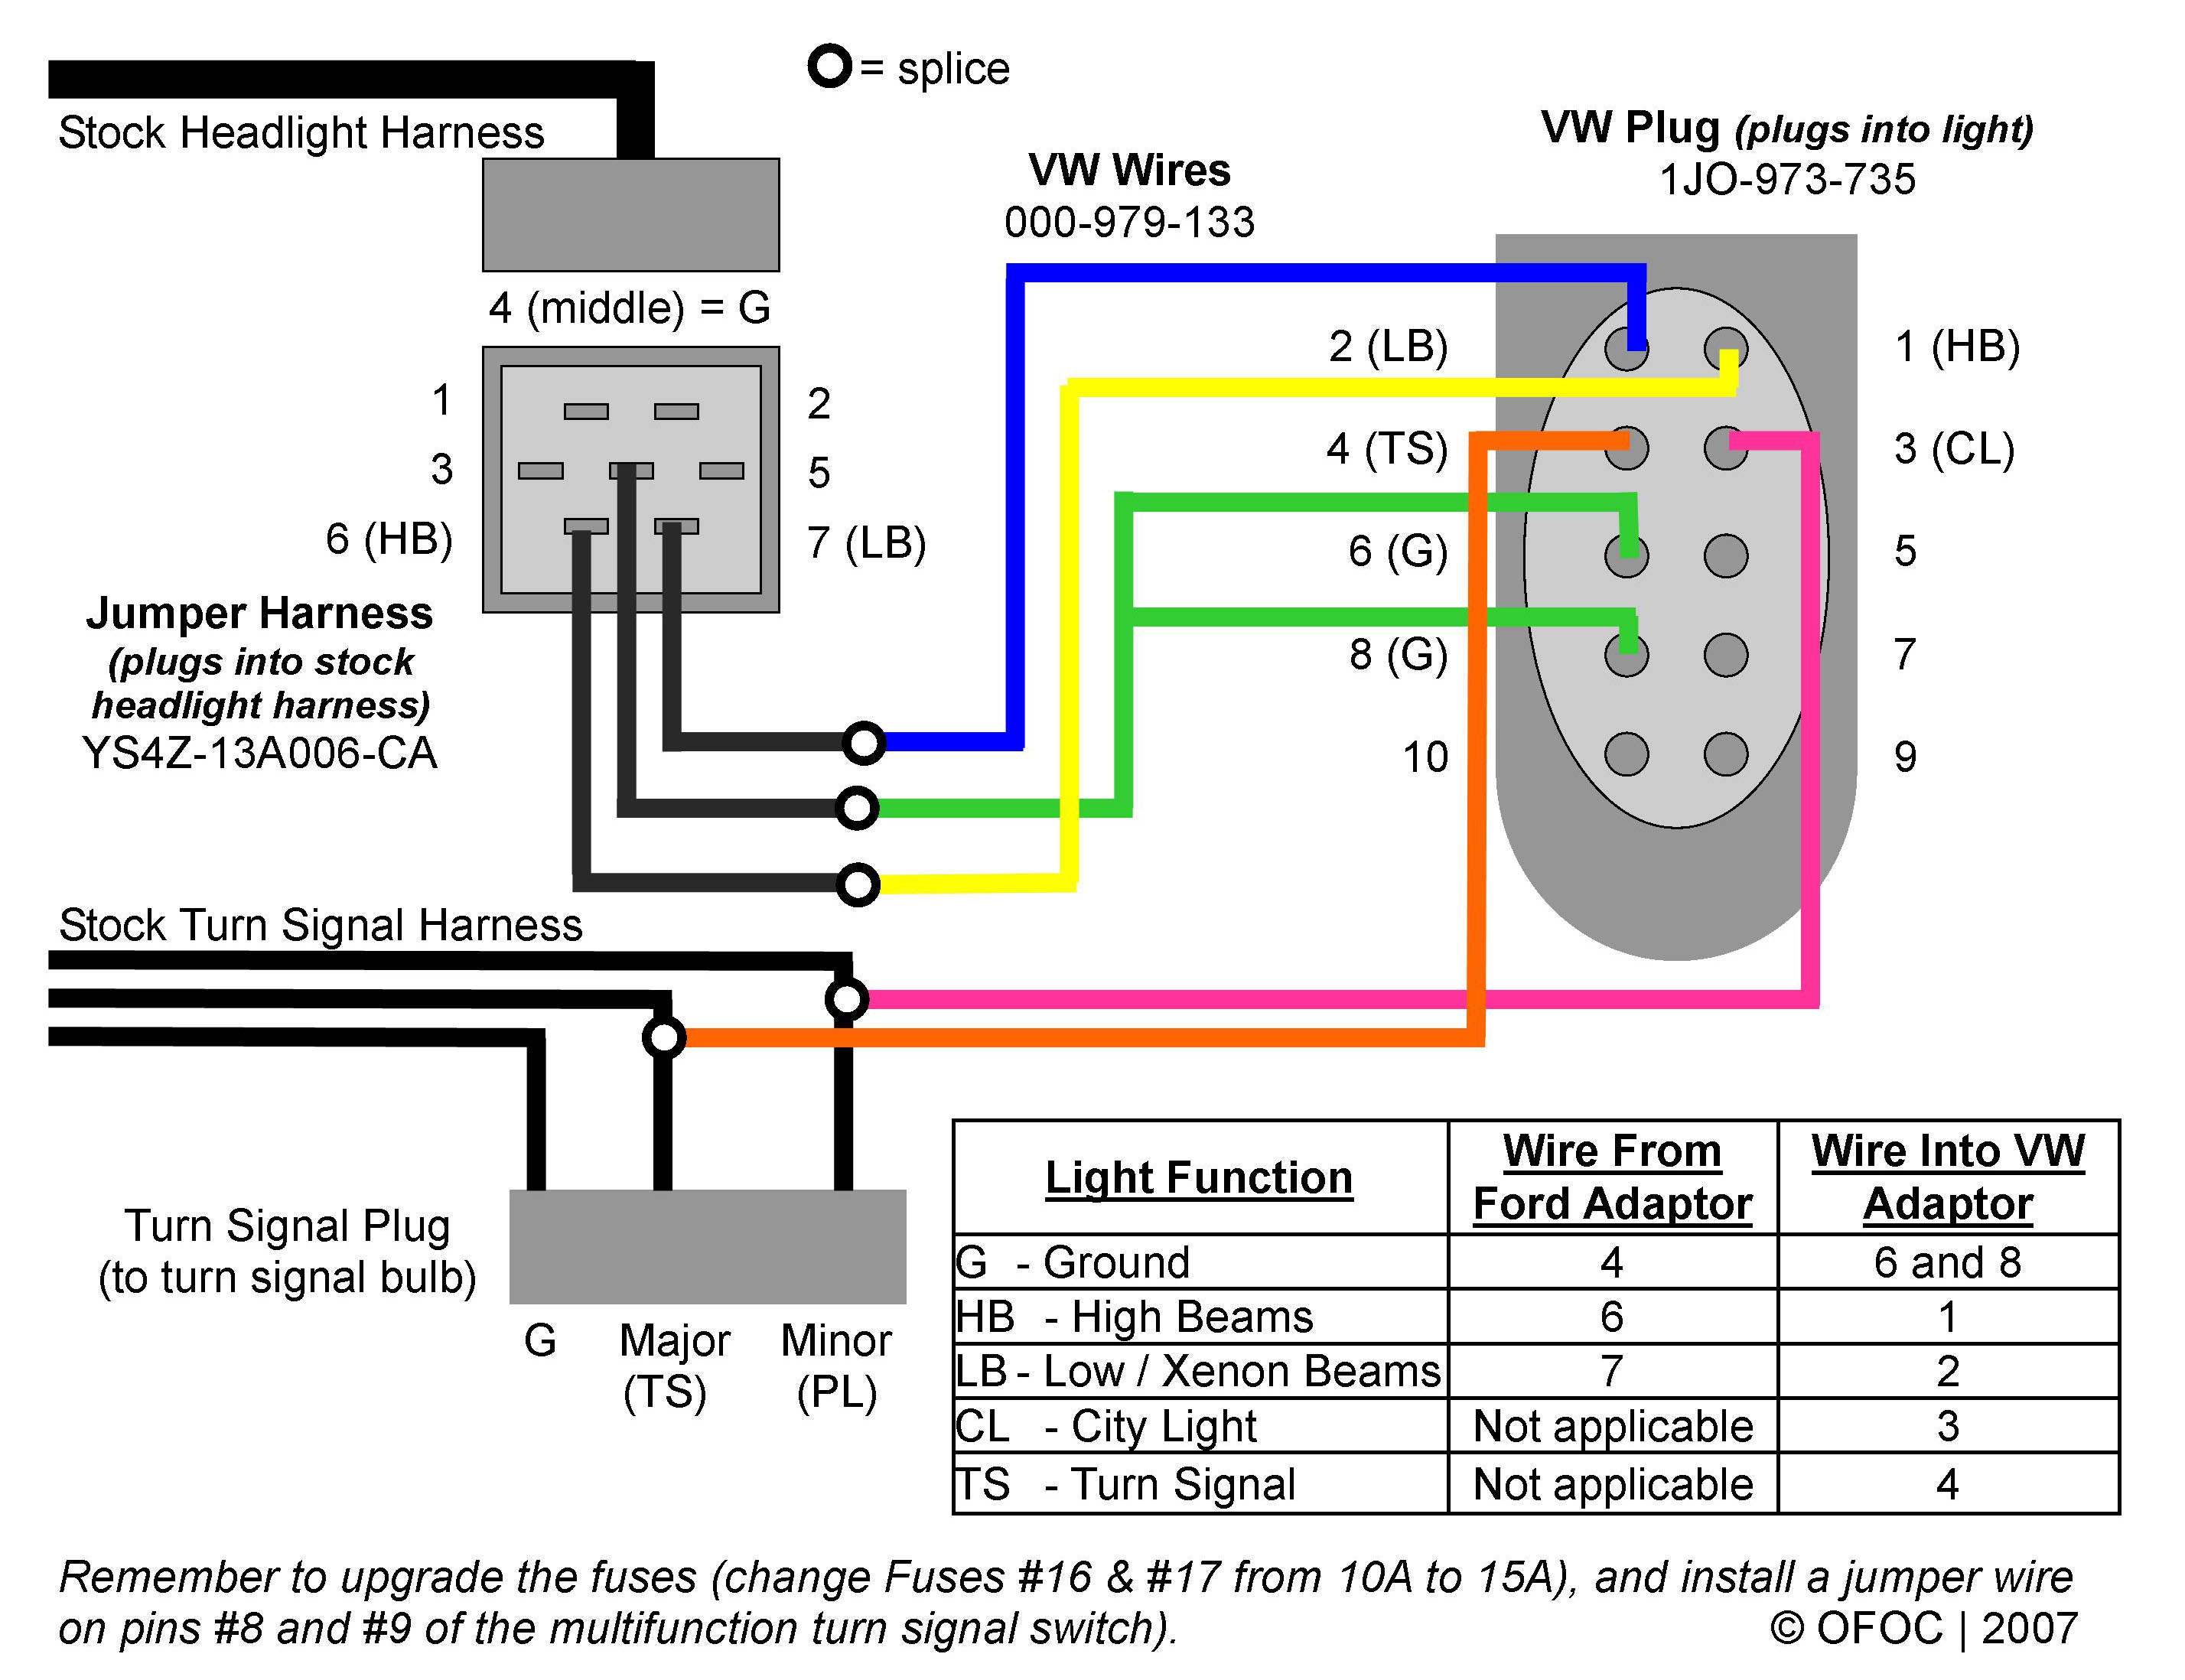 wiringschematic how to vw wiring hack (convert your car to euro mach headlights 2006 ford focus wiring harness at mifinder.co